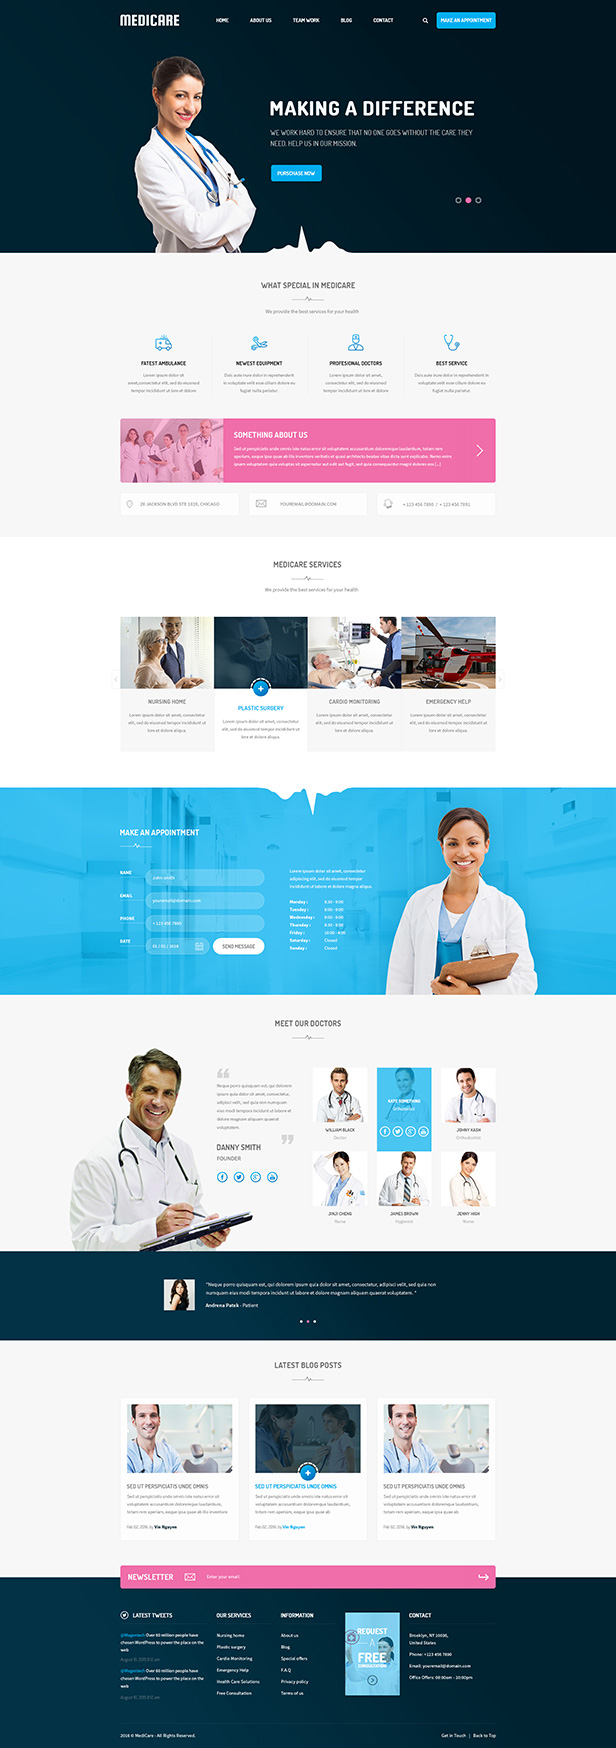 Medicare - Responsive Joomla Template For Medical Service Website